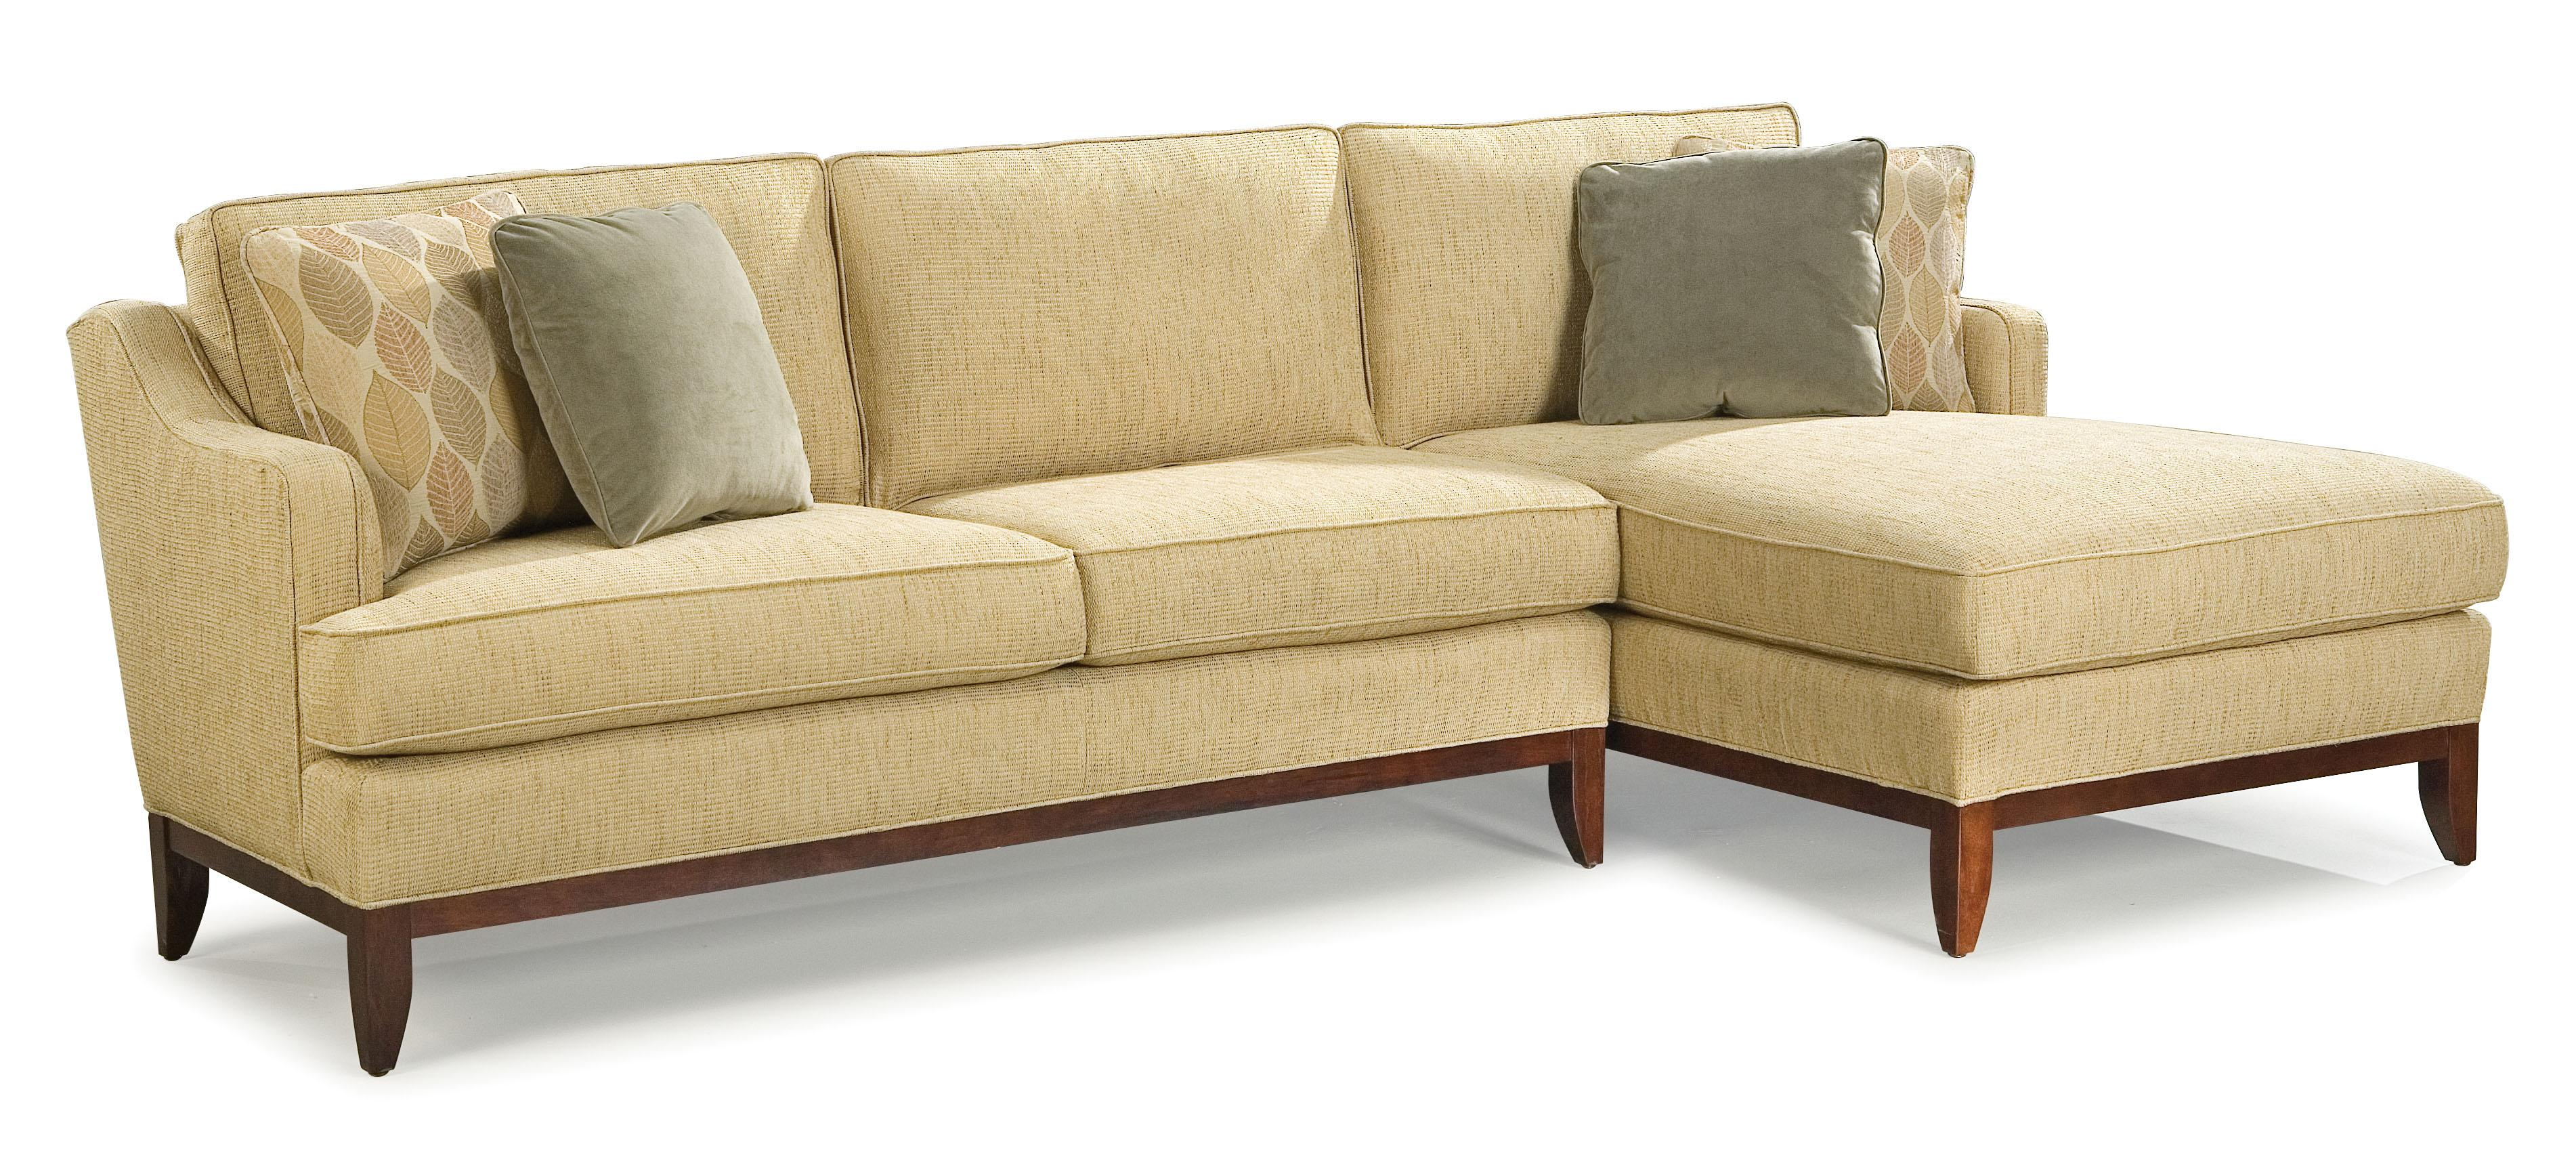 Fairfield 2714 Sectional Sofa - Item Number: 2714-52+26